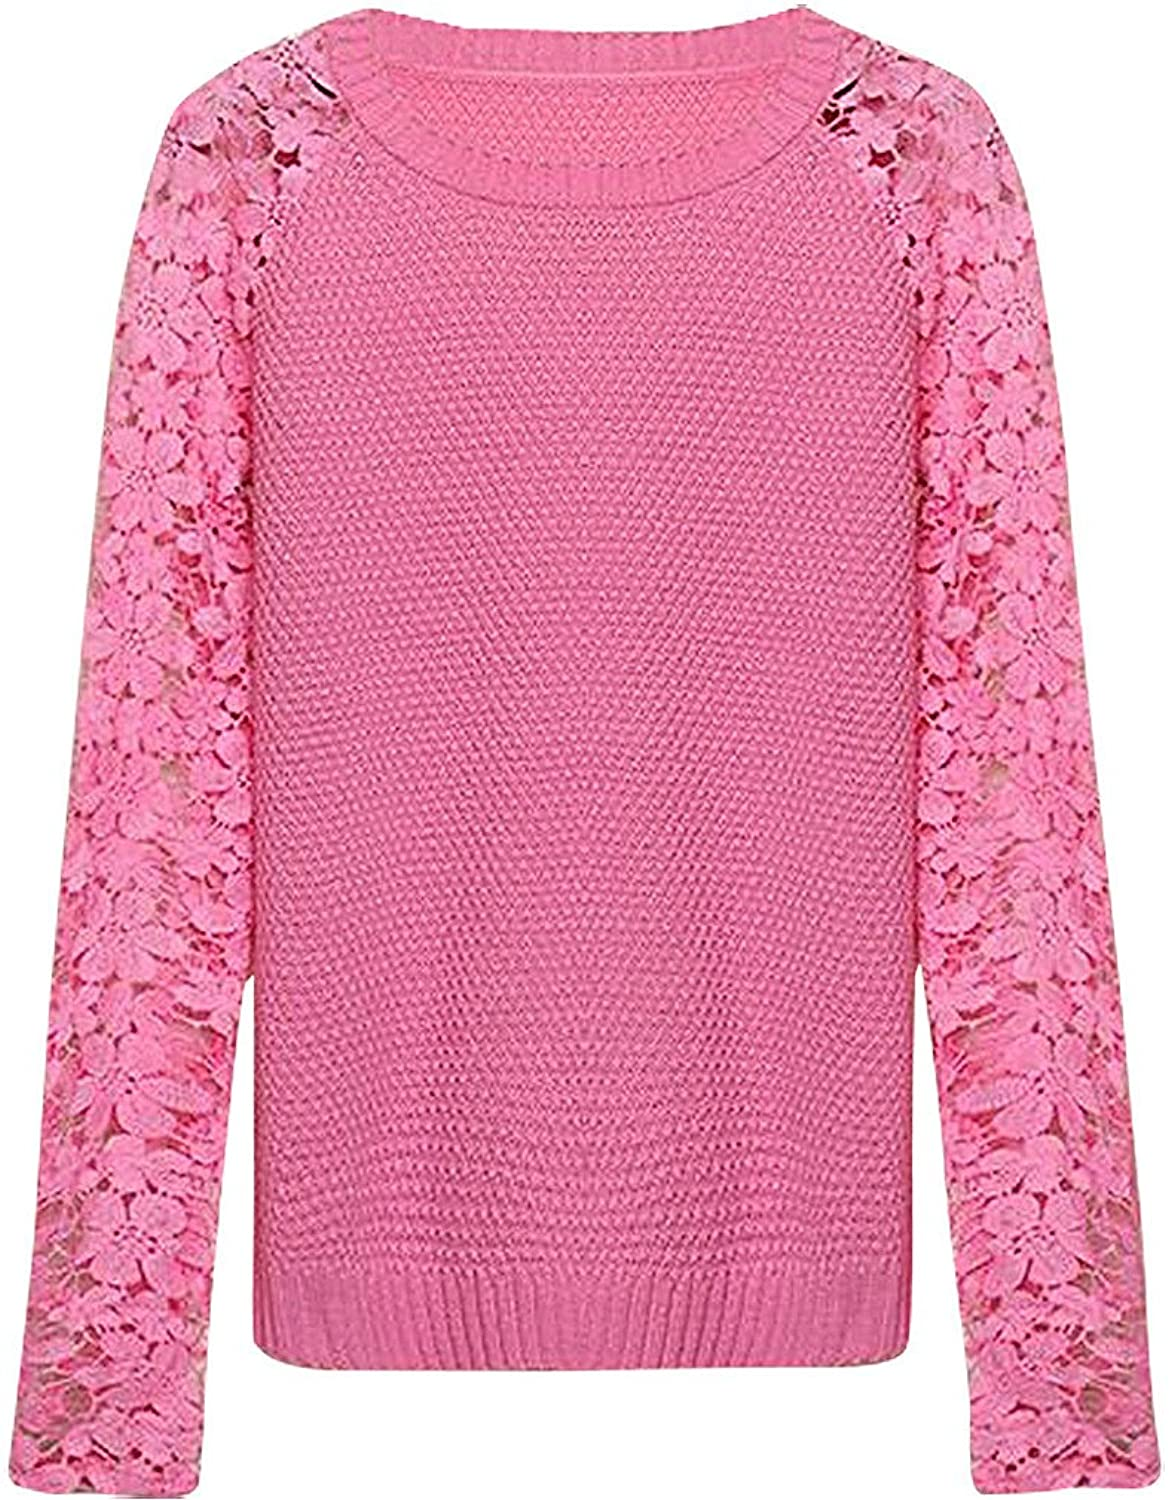 JVA Women's Stylish Slim Fit Long Lace Sleeve Thin Casual Knitted Pullover SW73